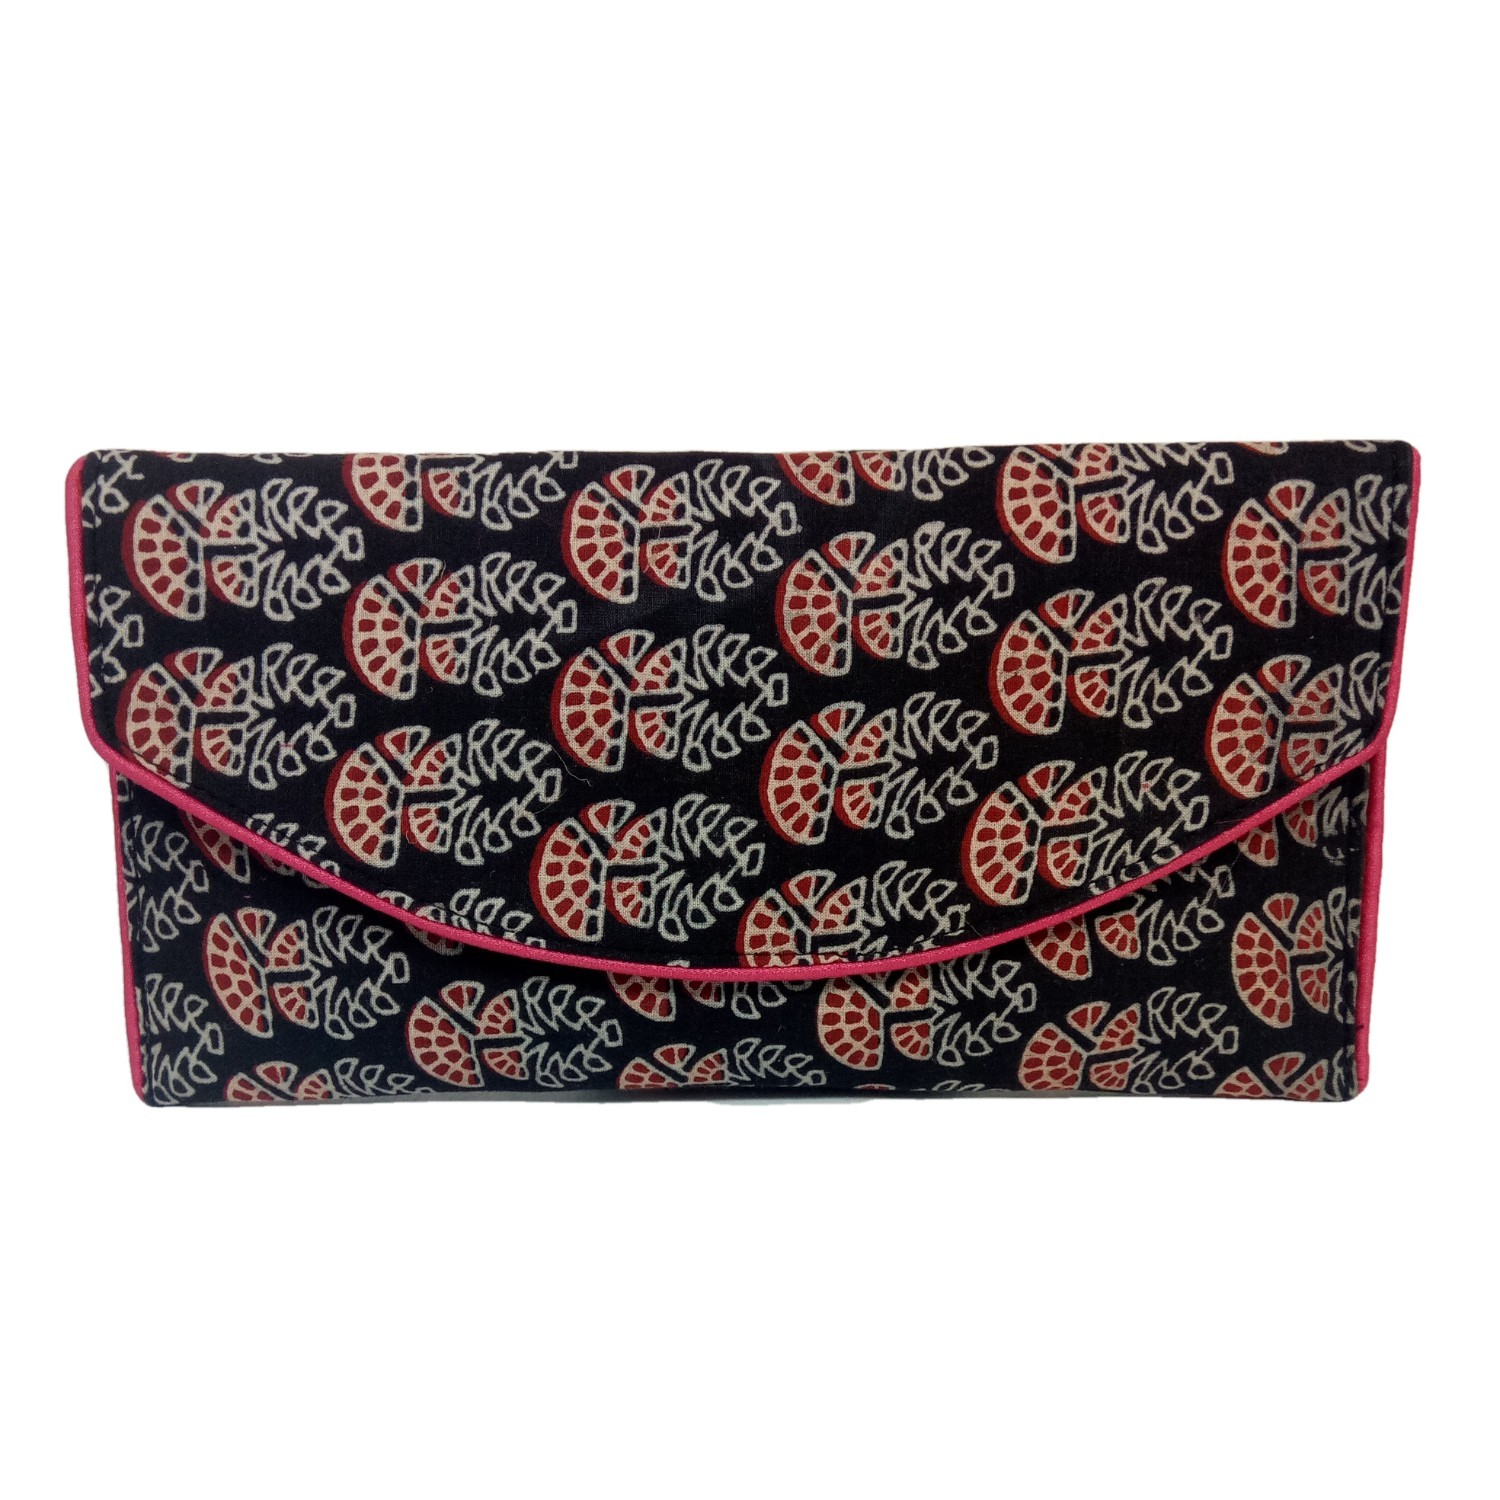 Handmade Excellent Black Genuine Clutch by Women Self Help Groups of Rajasthan